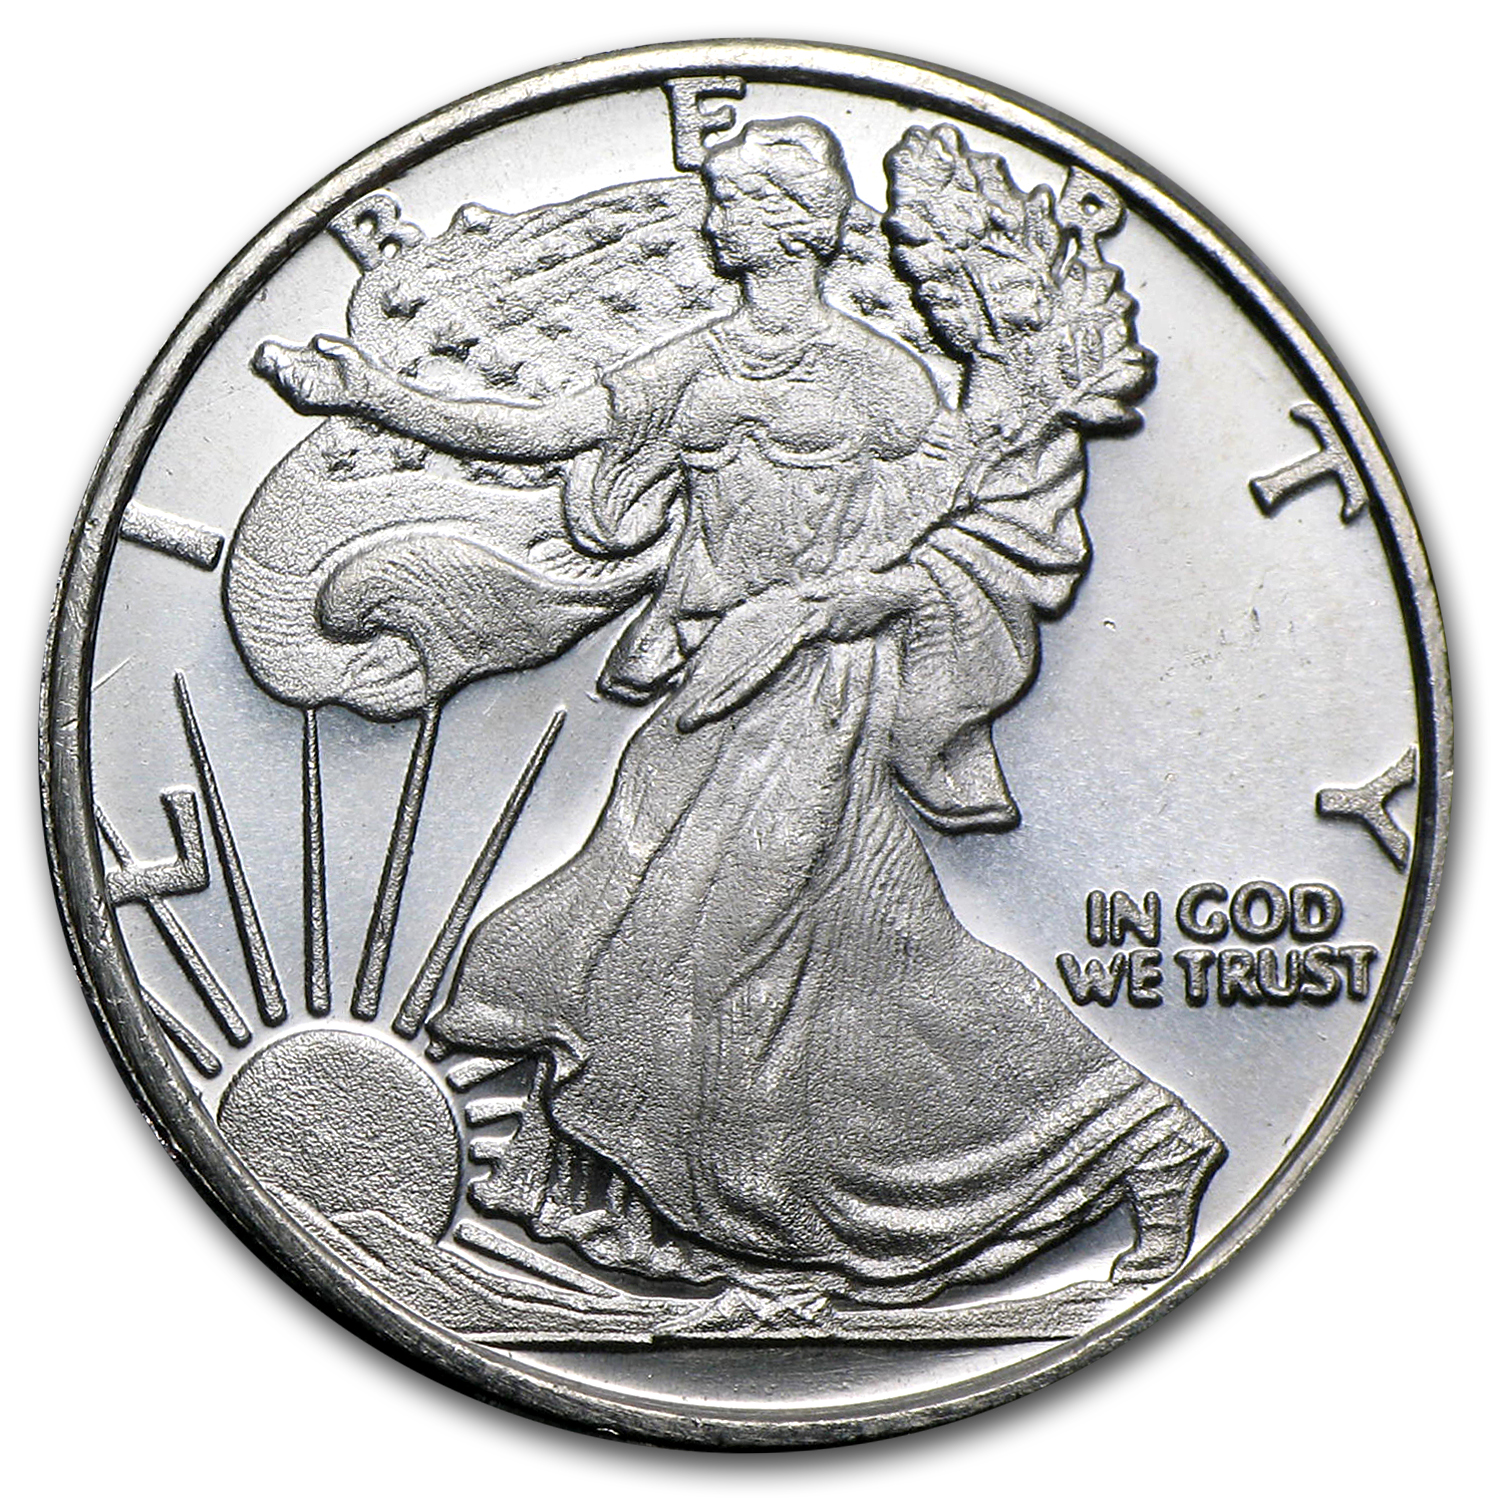 1/2 oz Silver Rounds - Silver Eagle (Walking Liberty/Replica)